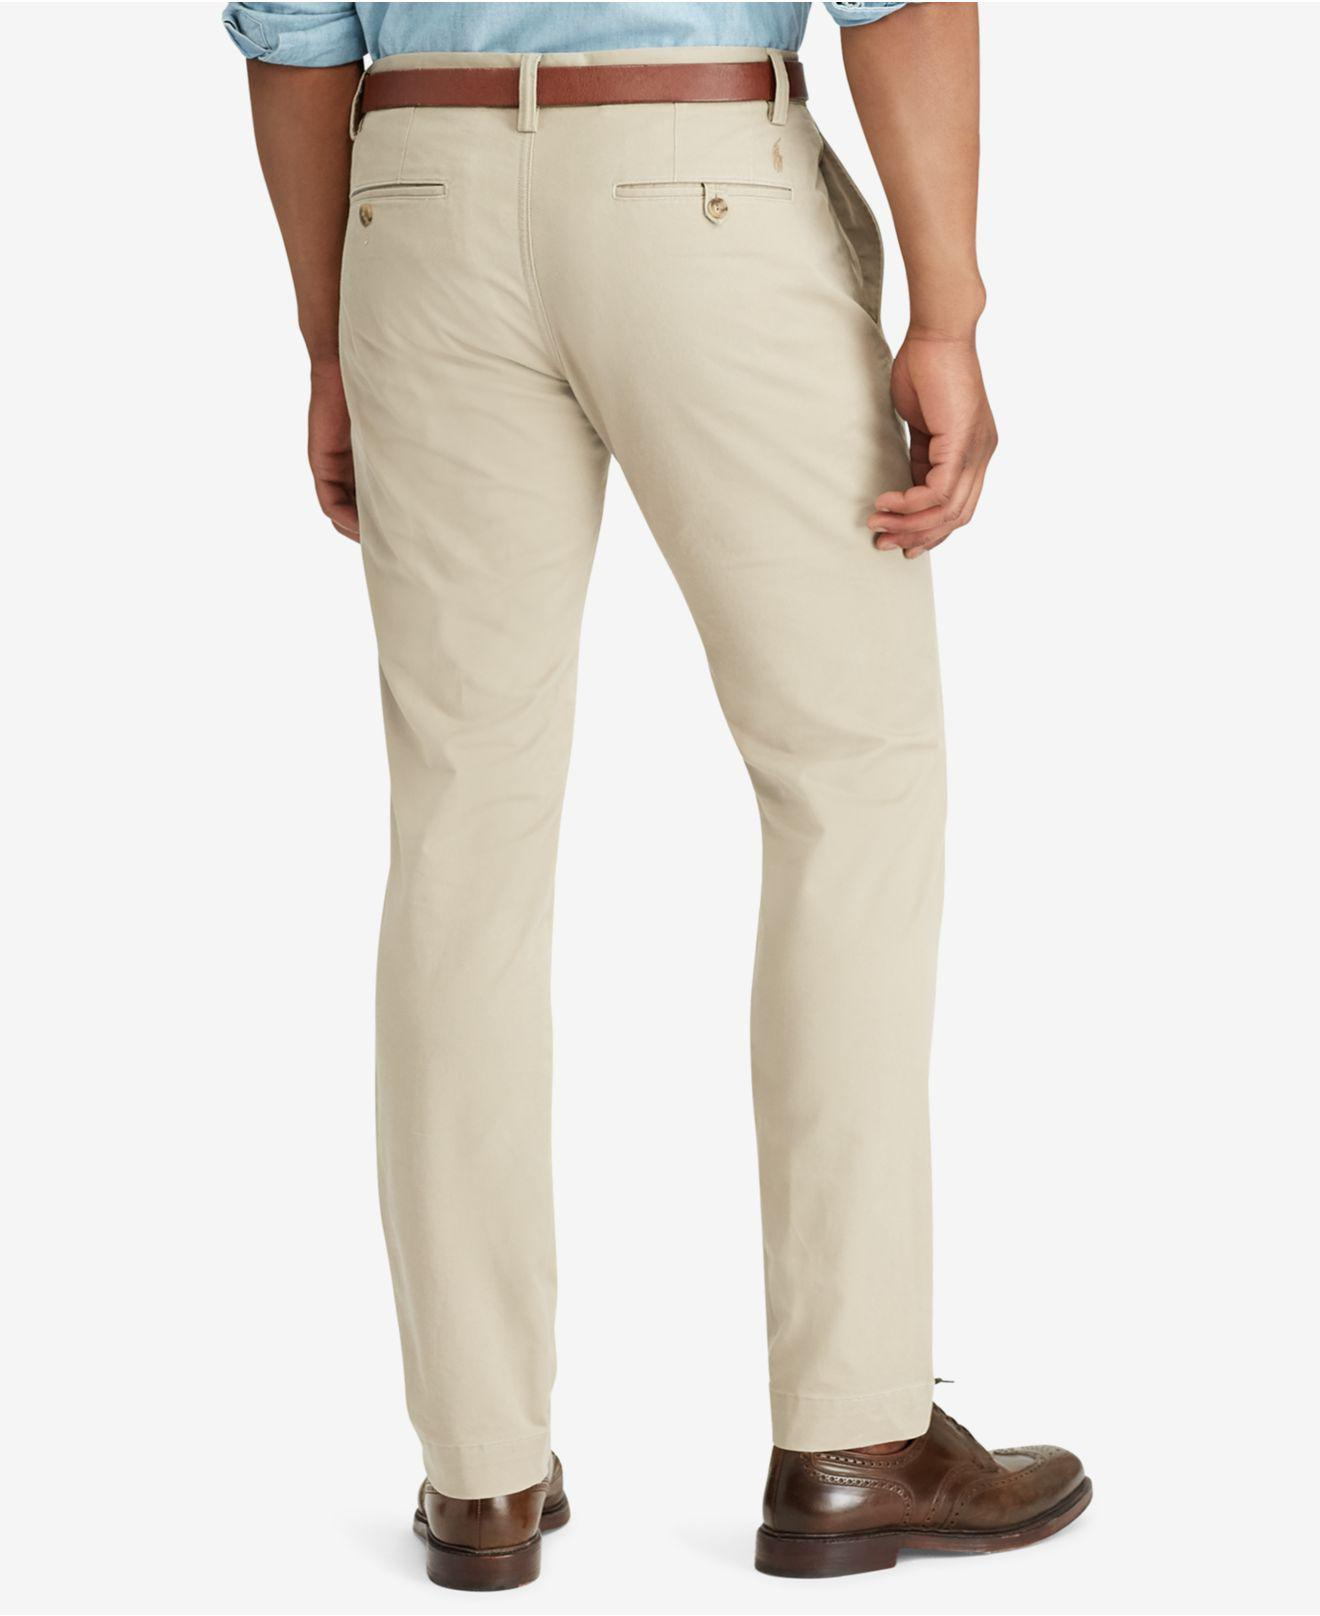 851bc42f13262 Lyst - Polo Ralph Lauren Men s Hampton Straight-fit 5-pocket Pants in  Natural for Men - Save 66%